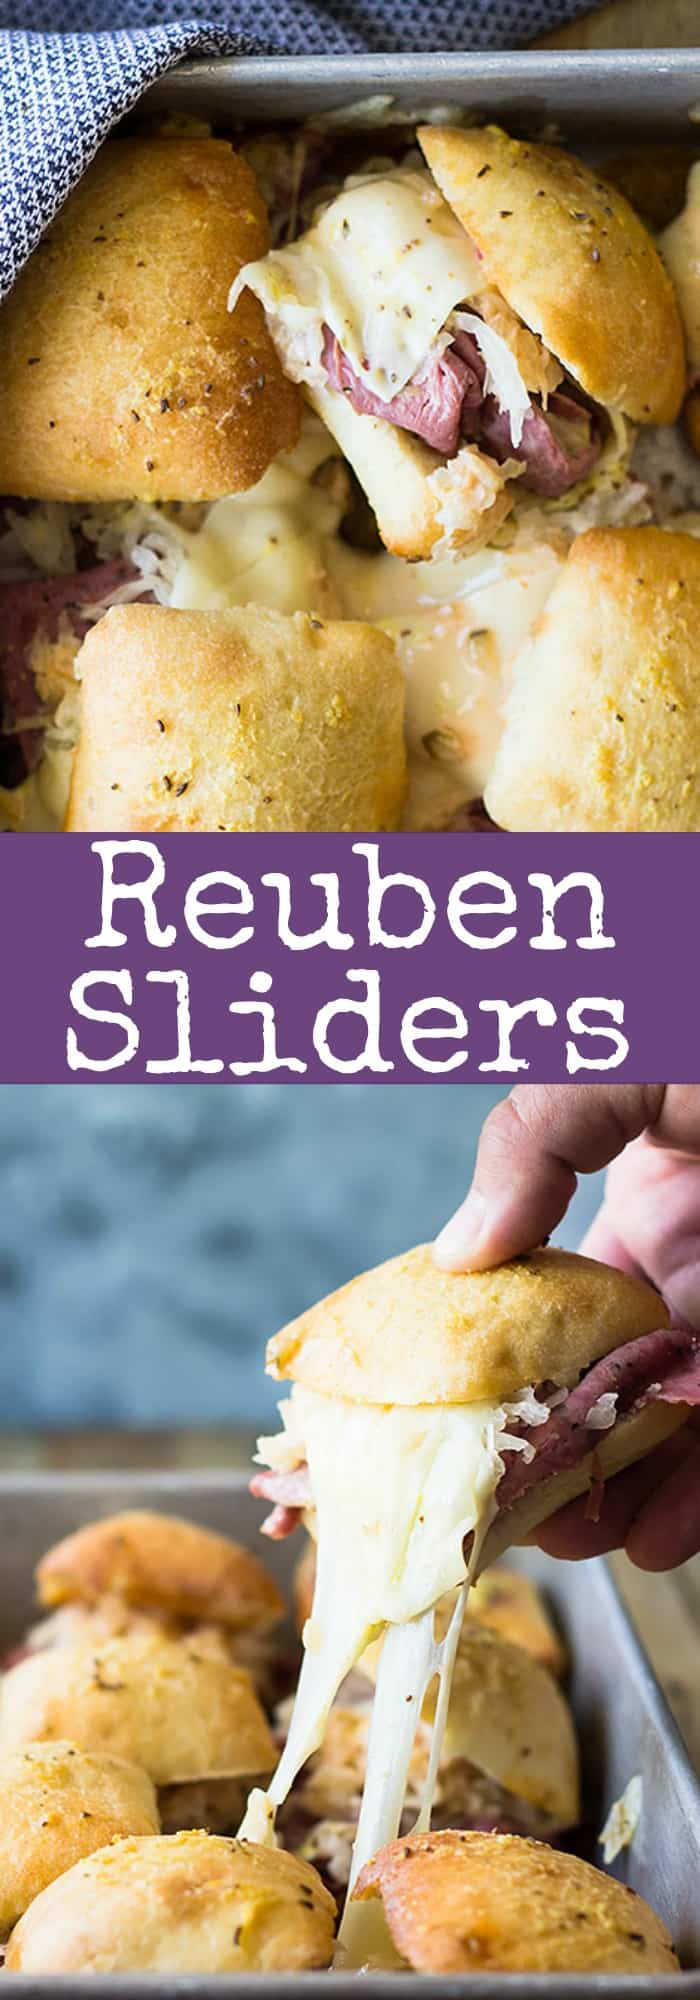 These easy Reuben Sliders make a great appetizer, snack or meal! Piled high with all the fixings they will definitely be a hit! | www.countrysidecravings.com